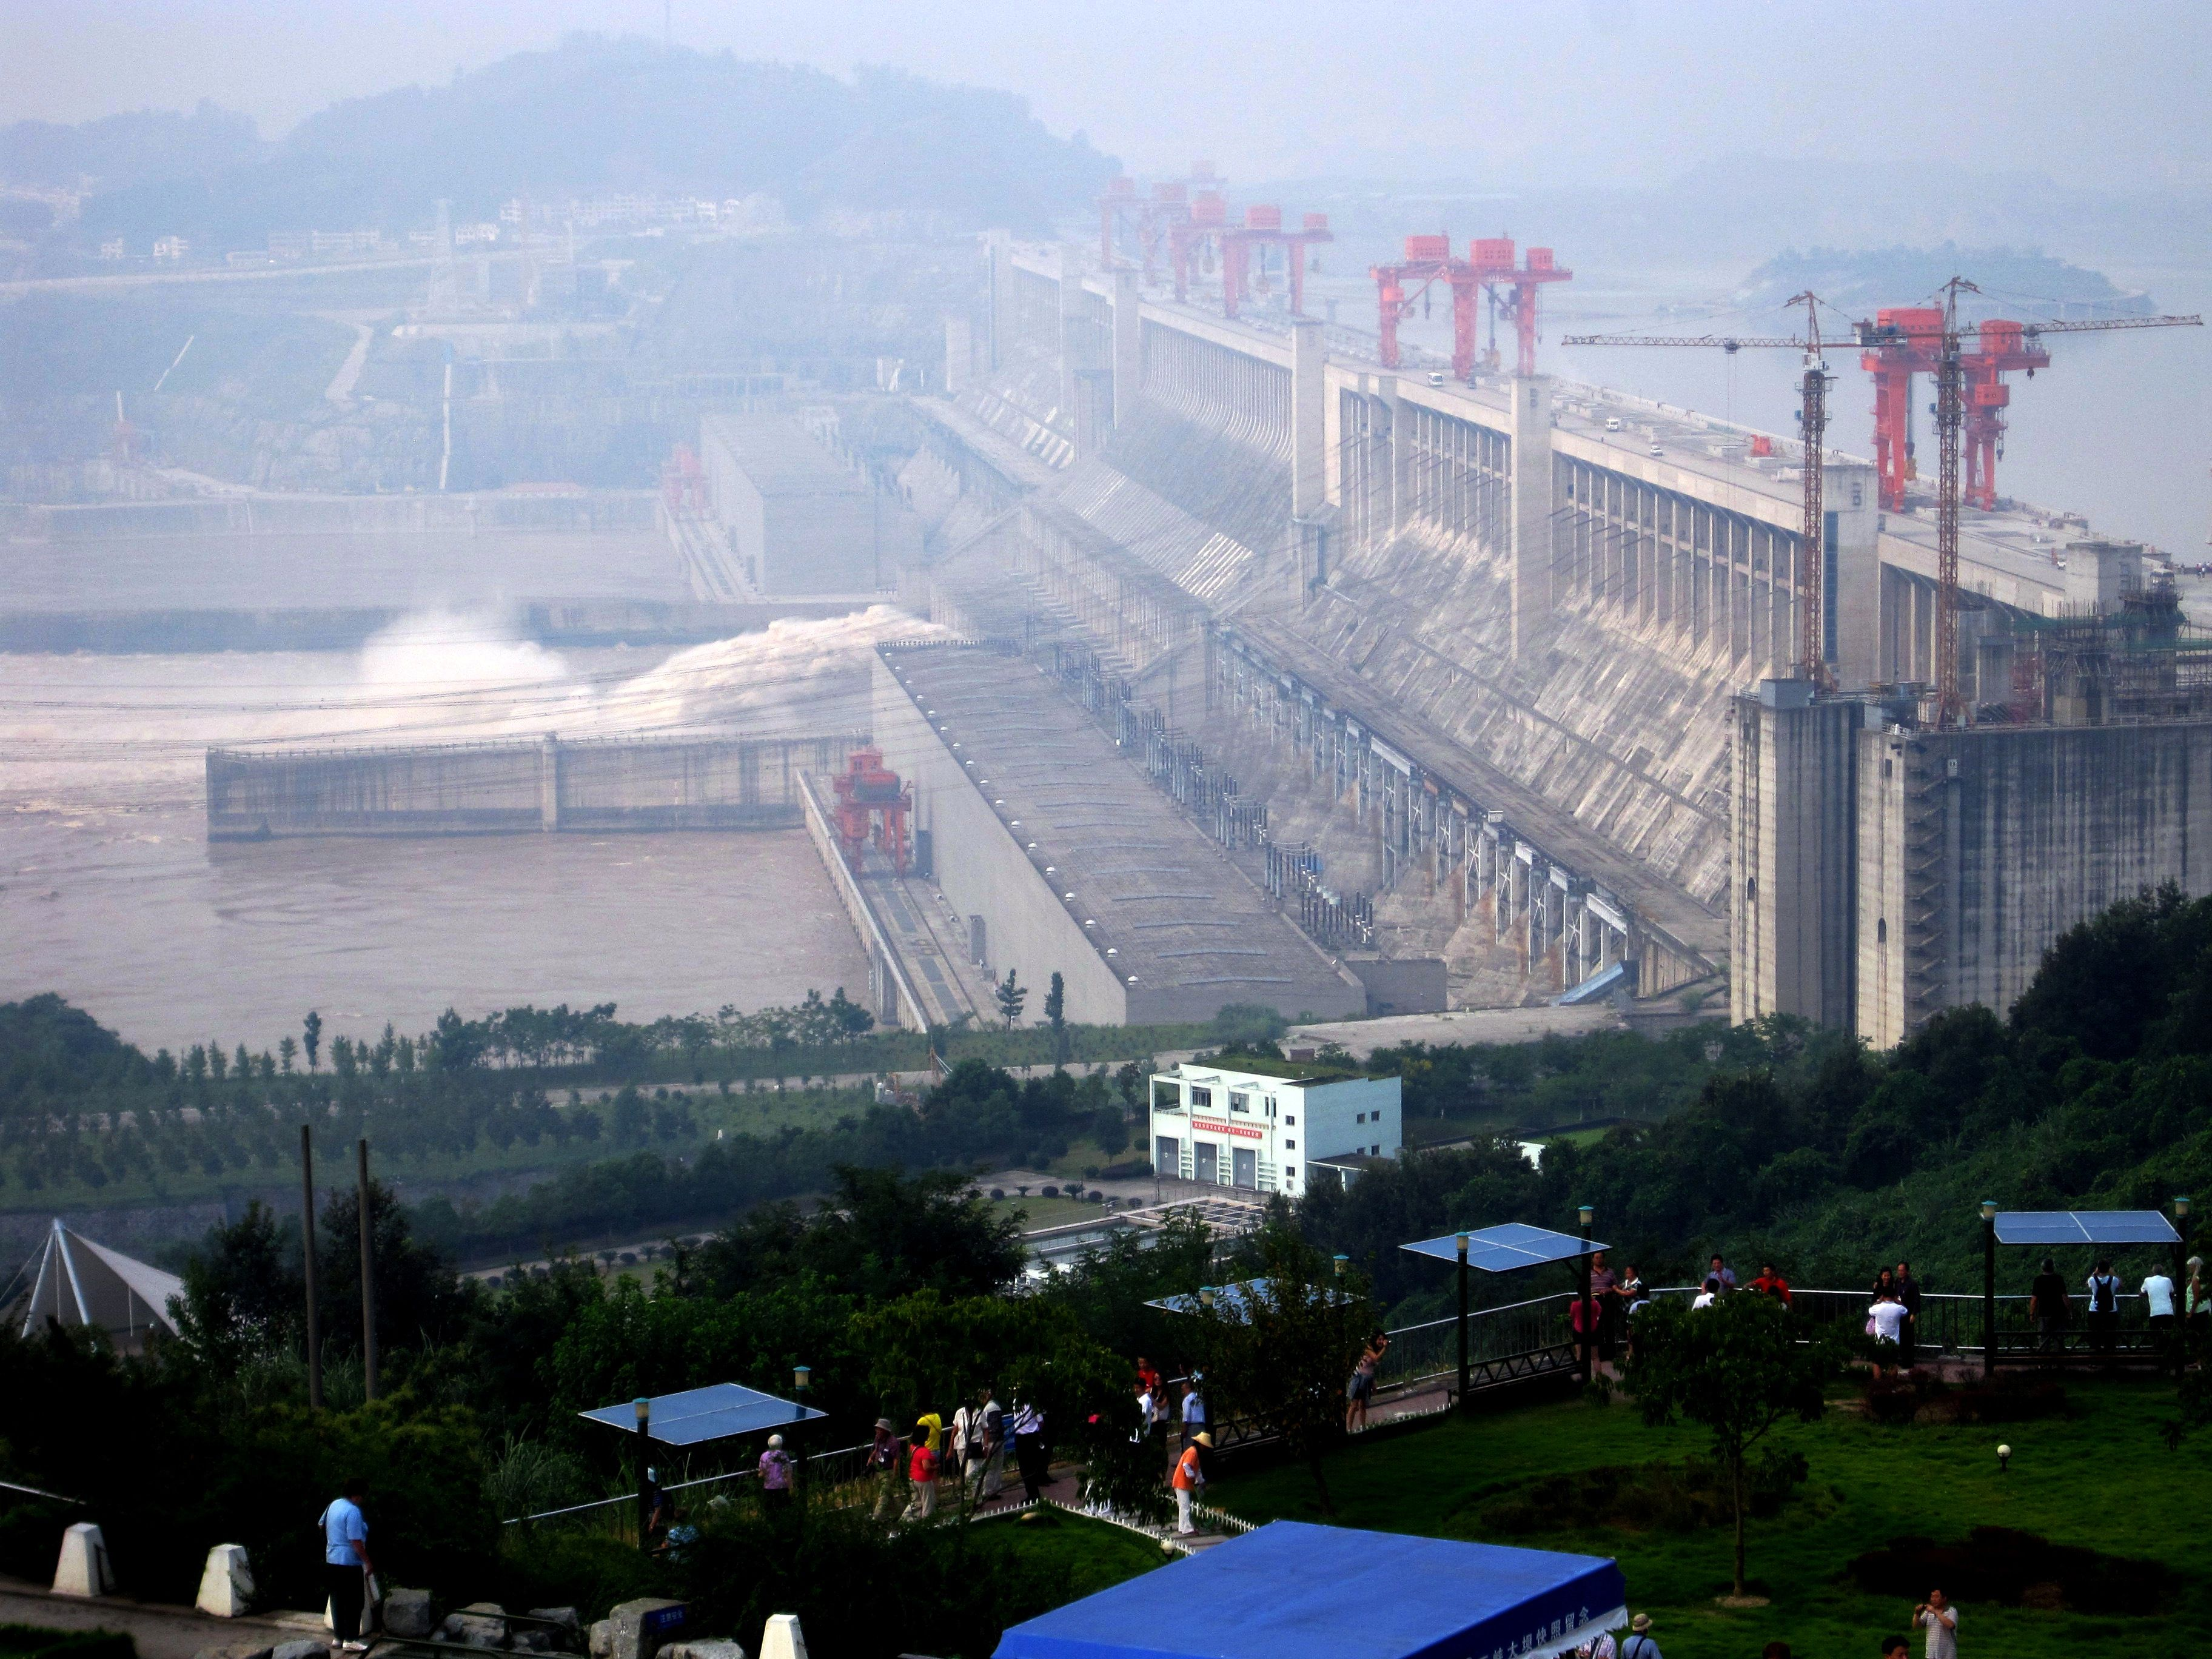 Three gorges dam project china s biggest project since the great wall - Gargantuan Structure Of The World S Biggest Hydro Project Is Usually Veiled In A Fog